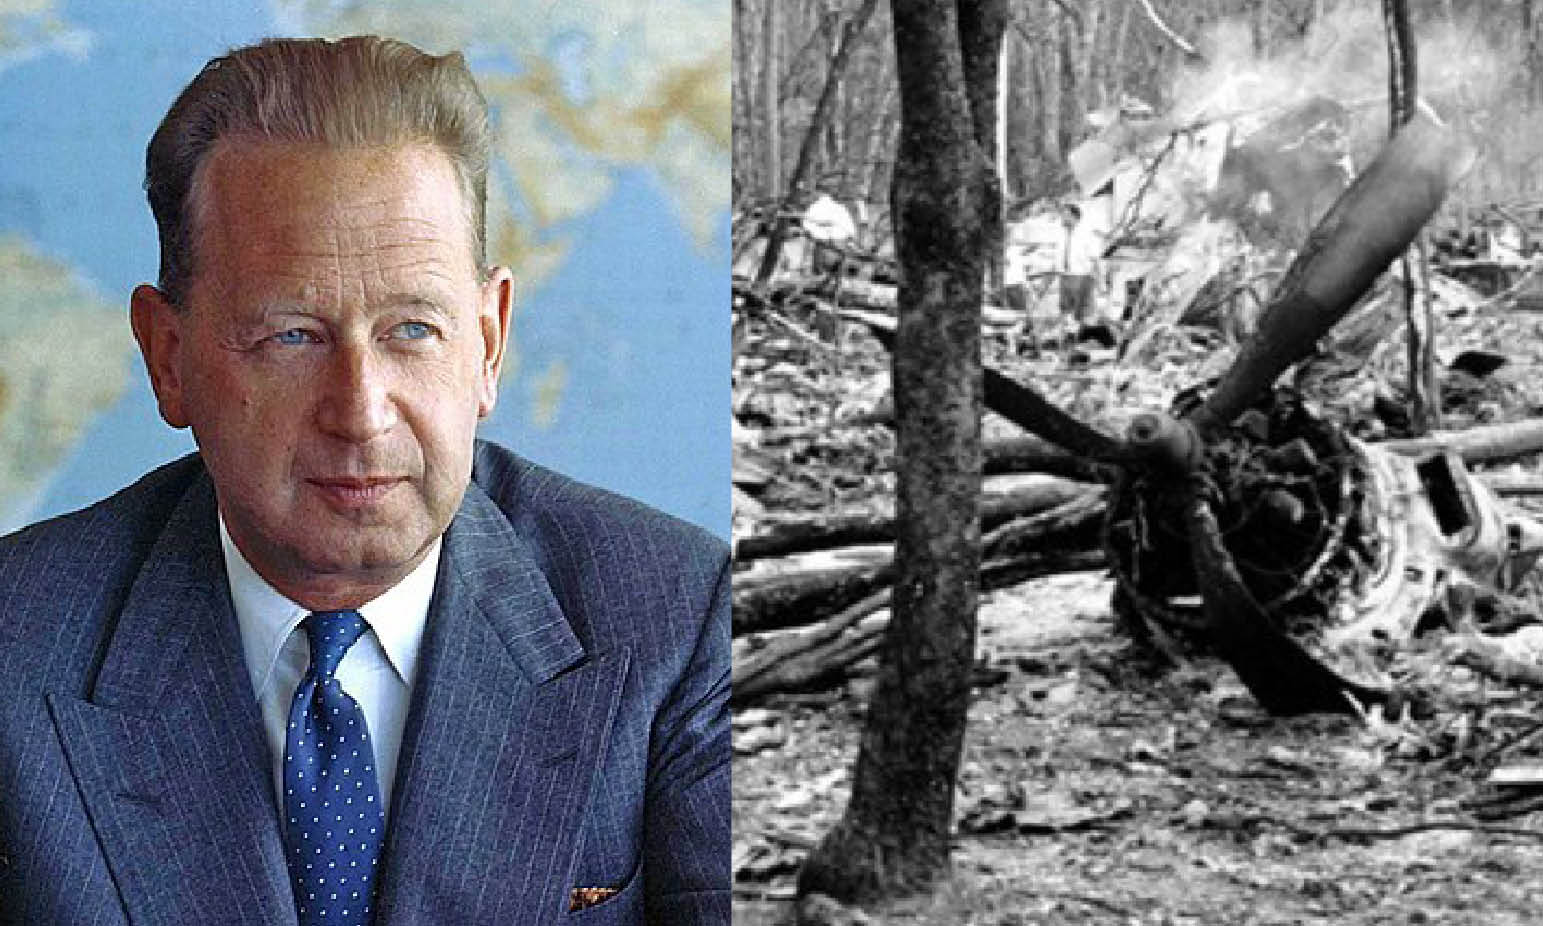 """THE UN SECRETARY GENERAL KILLED"": AFTER 58 YEARS THE BRITISH 007 CONCEAL THE DOSSIER"